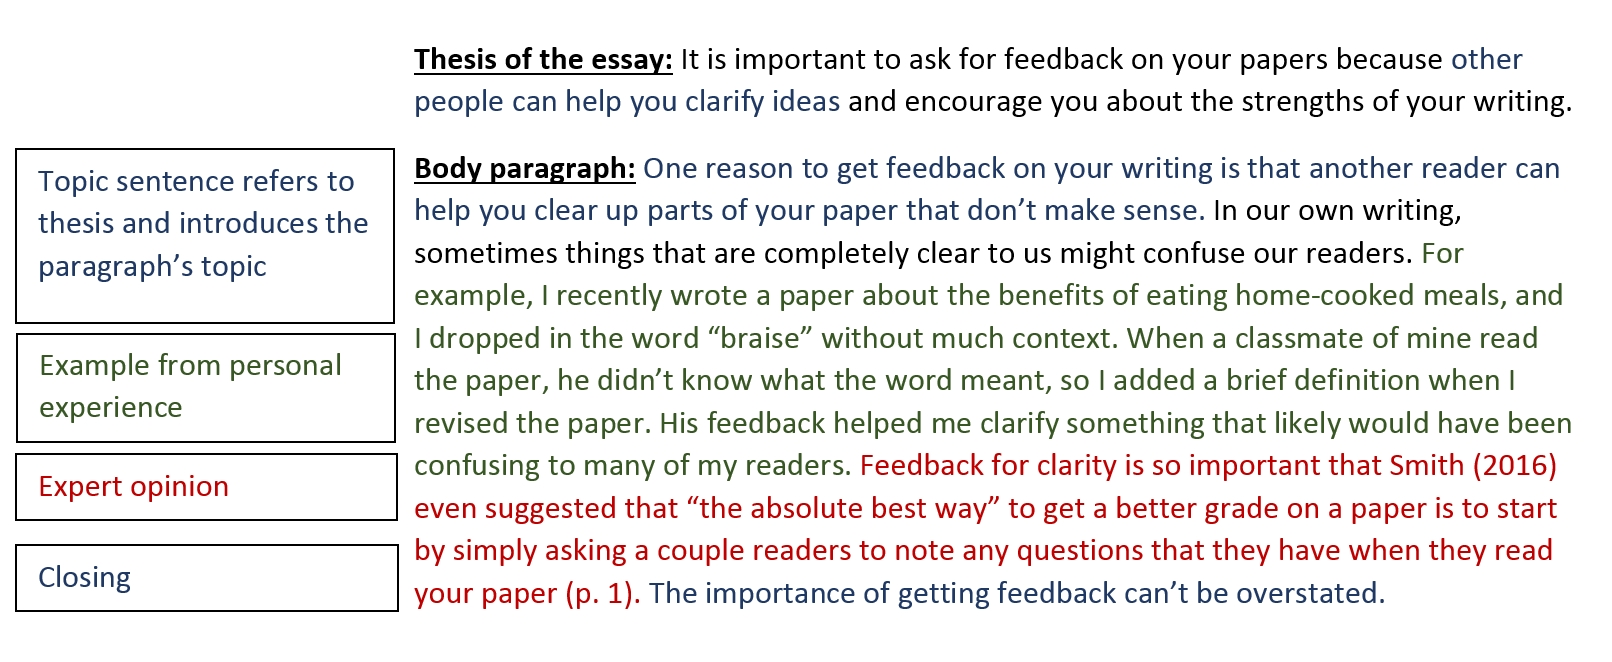 013 Introduction Paragraph For Research Paper Example Body Paragraphs Writing Your Guides At Eastern With Regard Exceptional A Full